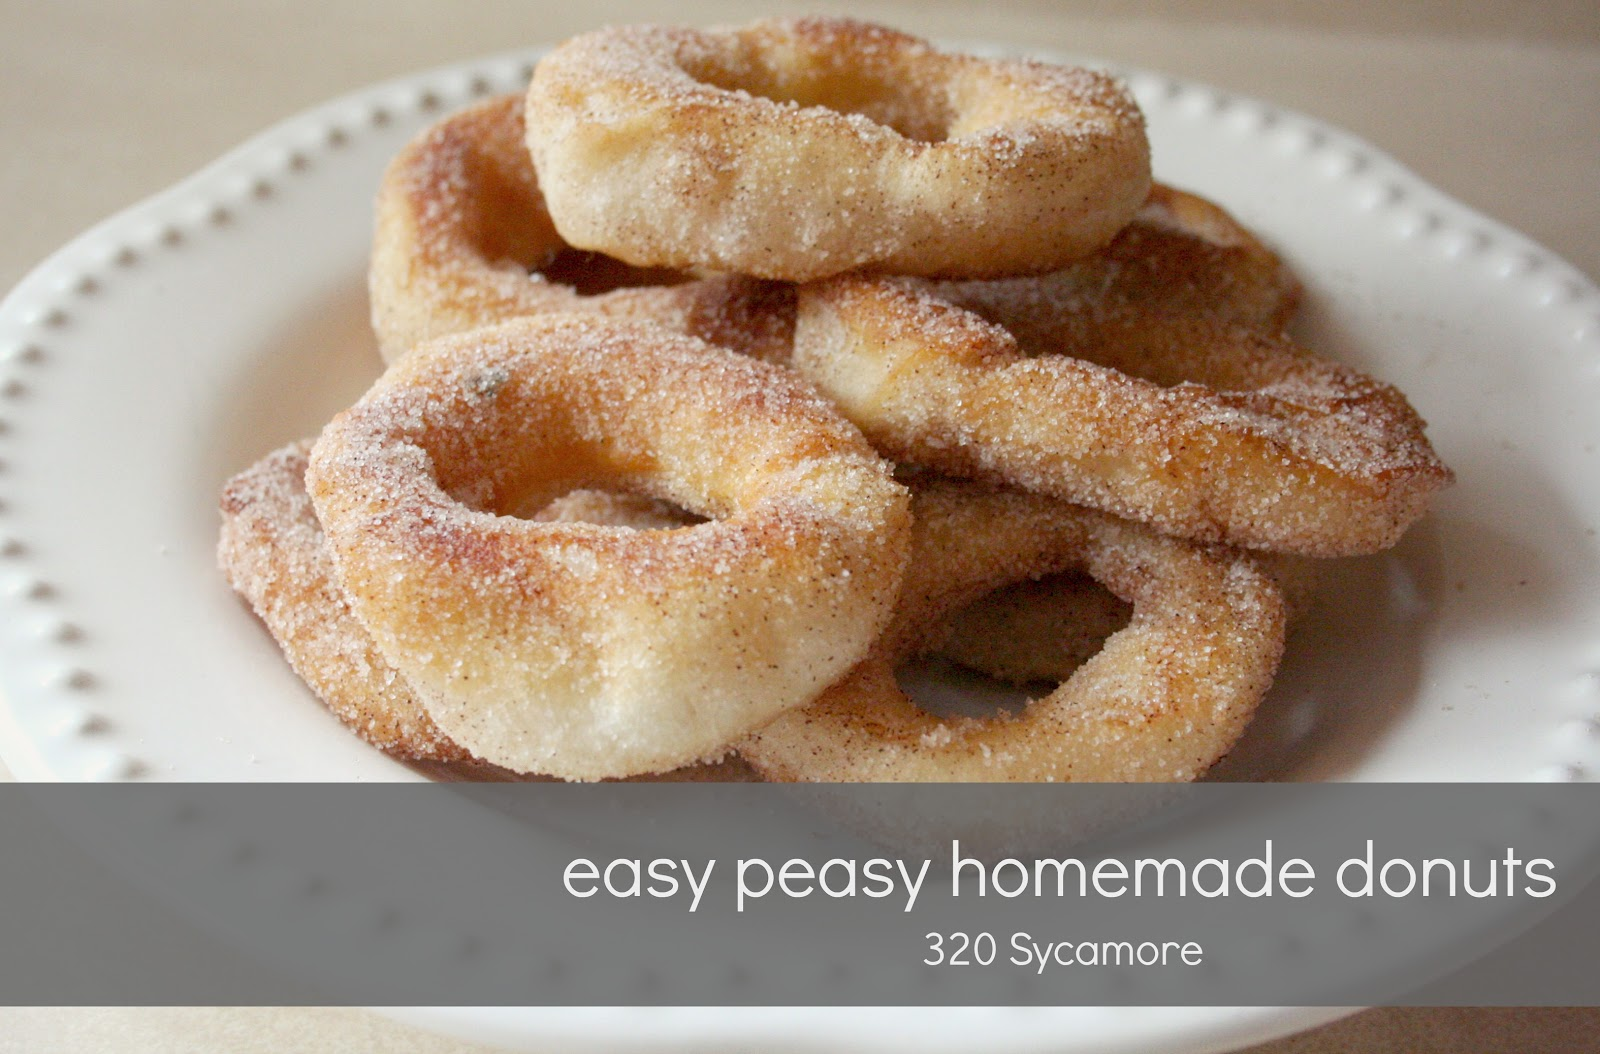 easy peasy homemade donuts | 320 * Sycamore